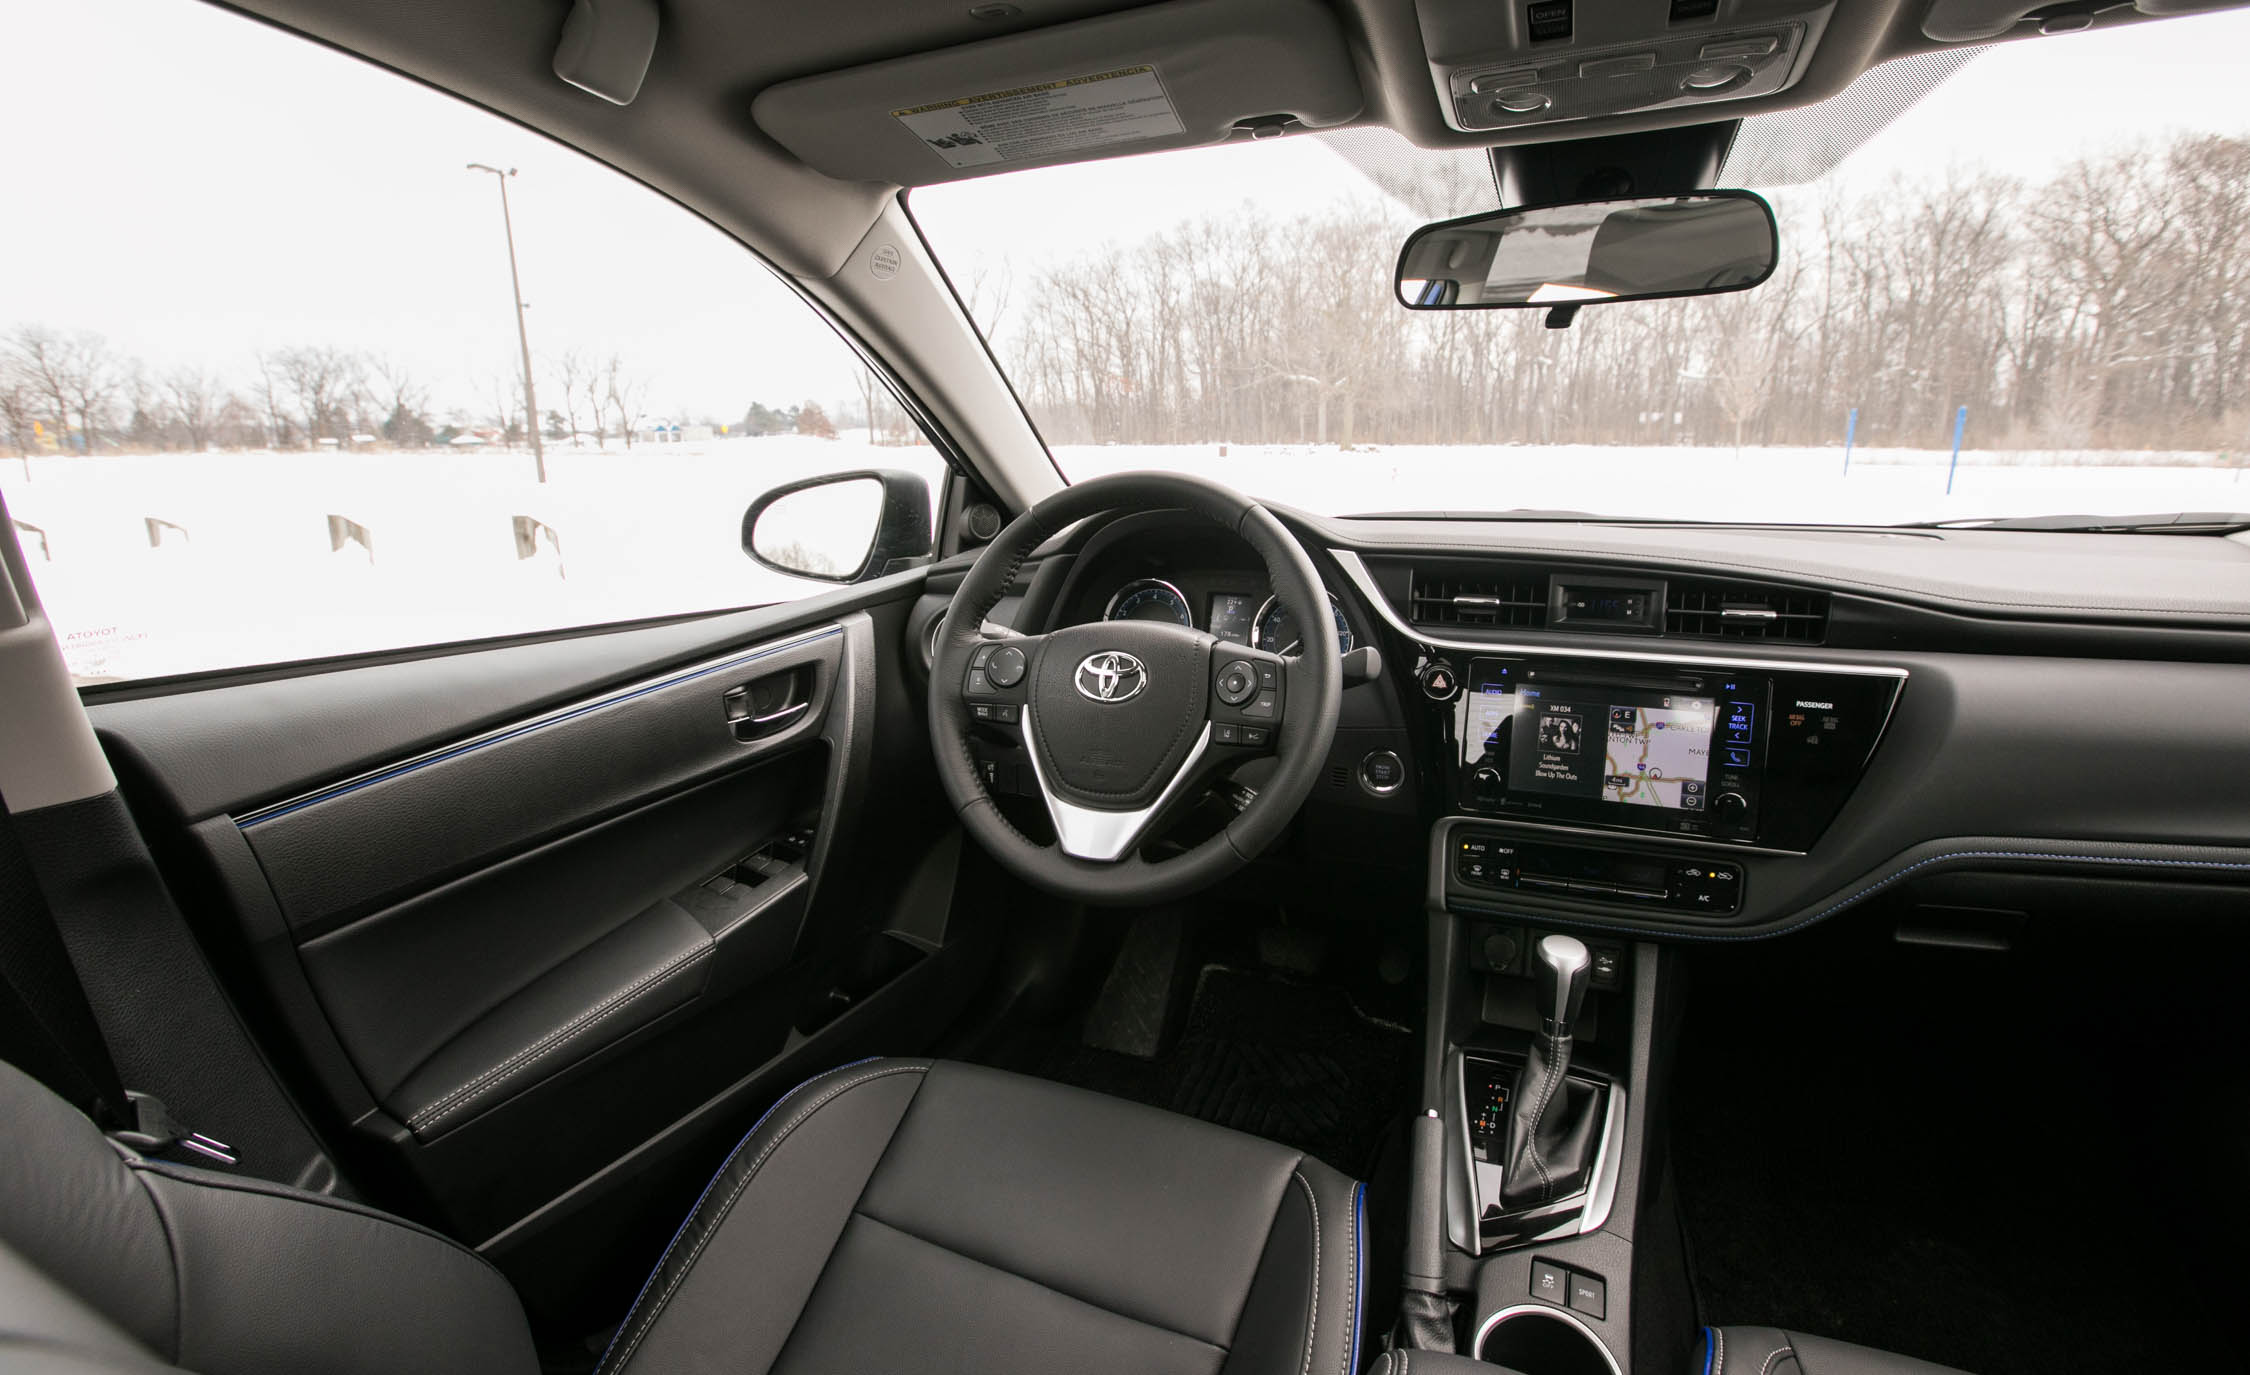 2017 Toyota Corolla XSE Interior Cockpit Driver (Photo 50 of 75)